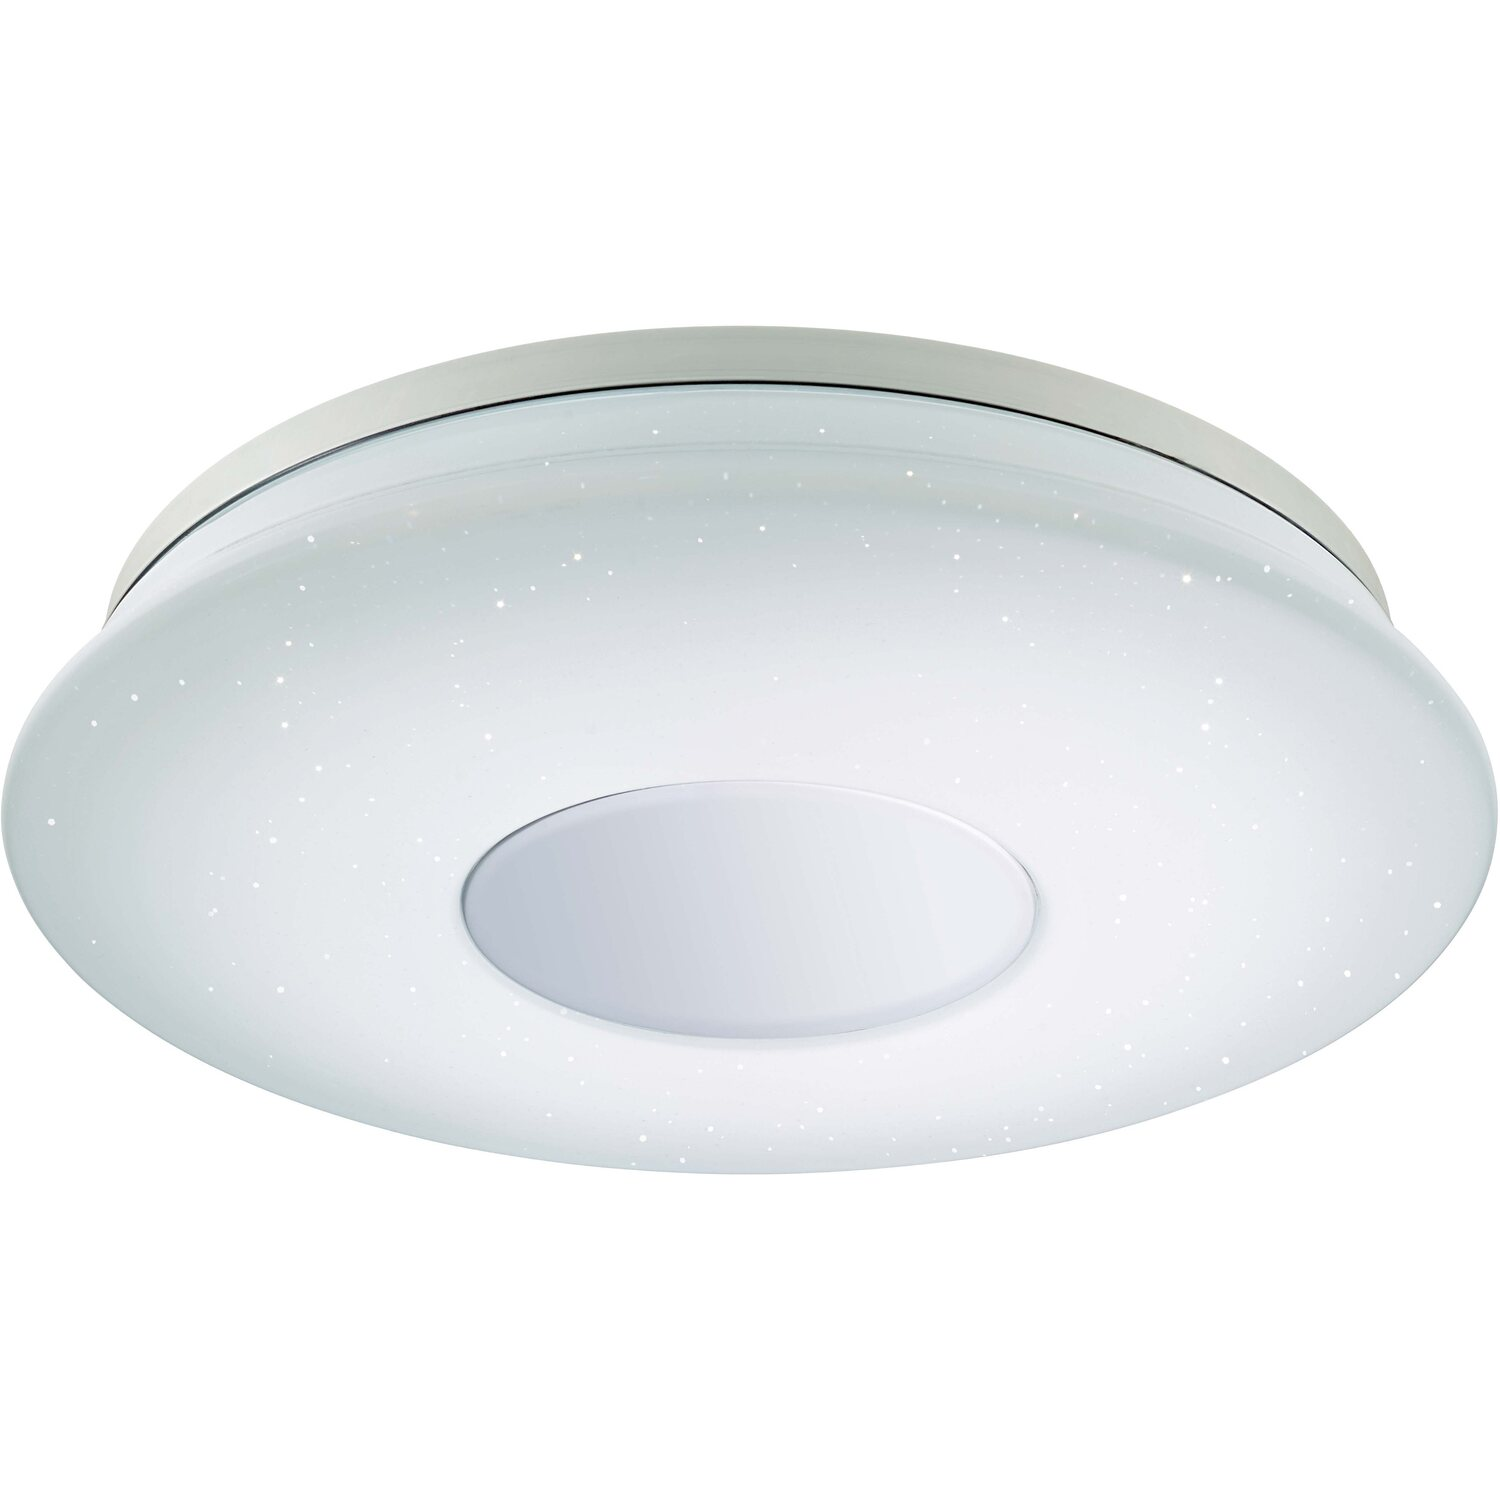 led deckenleuchte sternenhimmel silano 60cm eek a kaufen. Black Bedroom Furniture Sets. Home Design Ideas